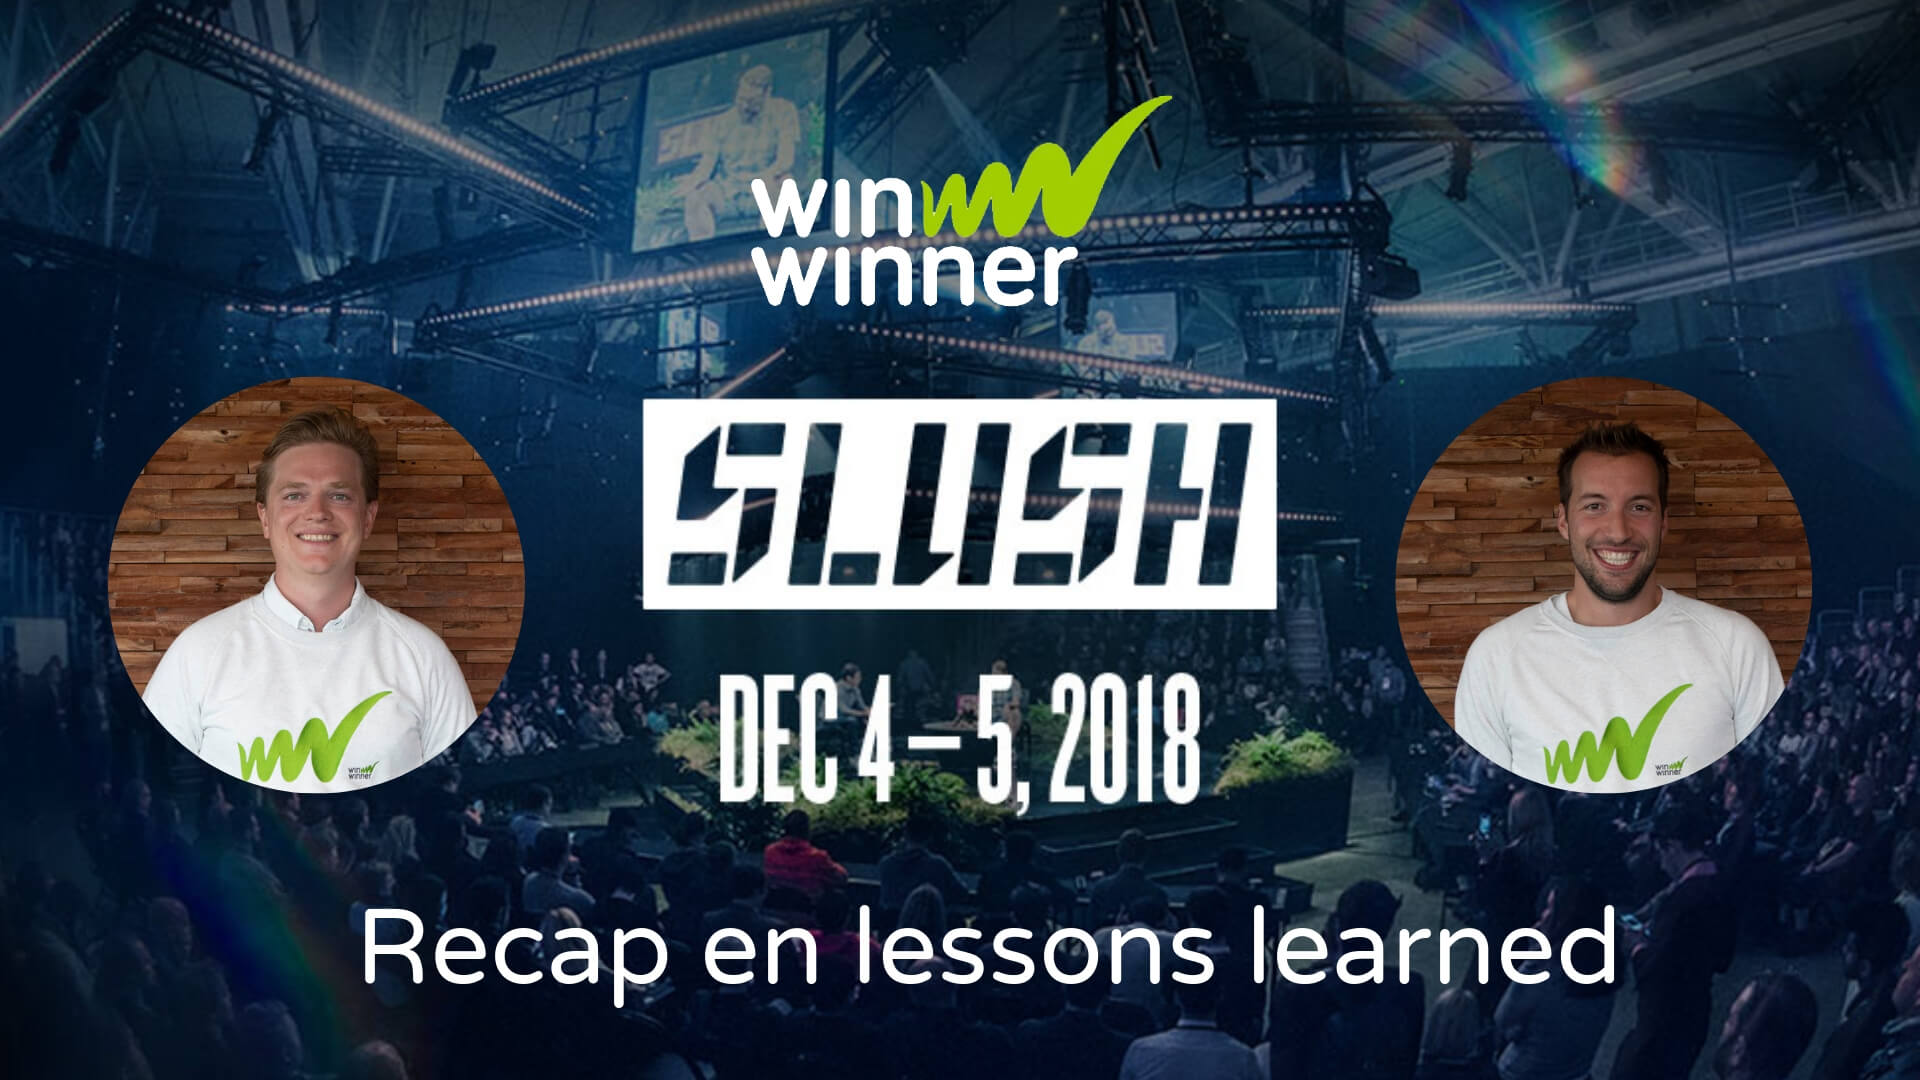 WinWinner @ Slush: Episode 4 - Recap en lessons learned